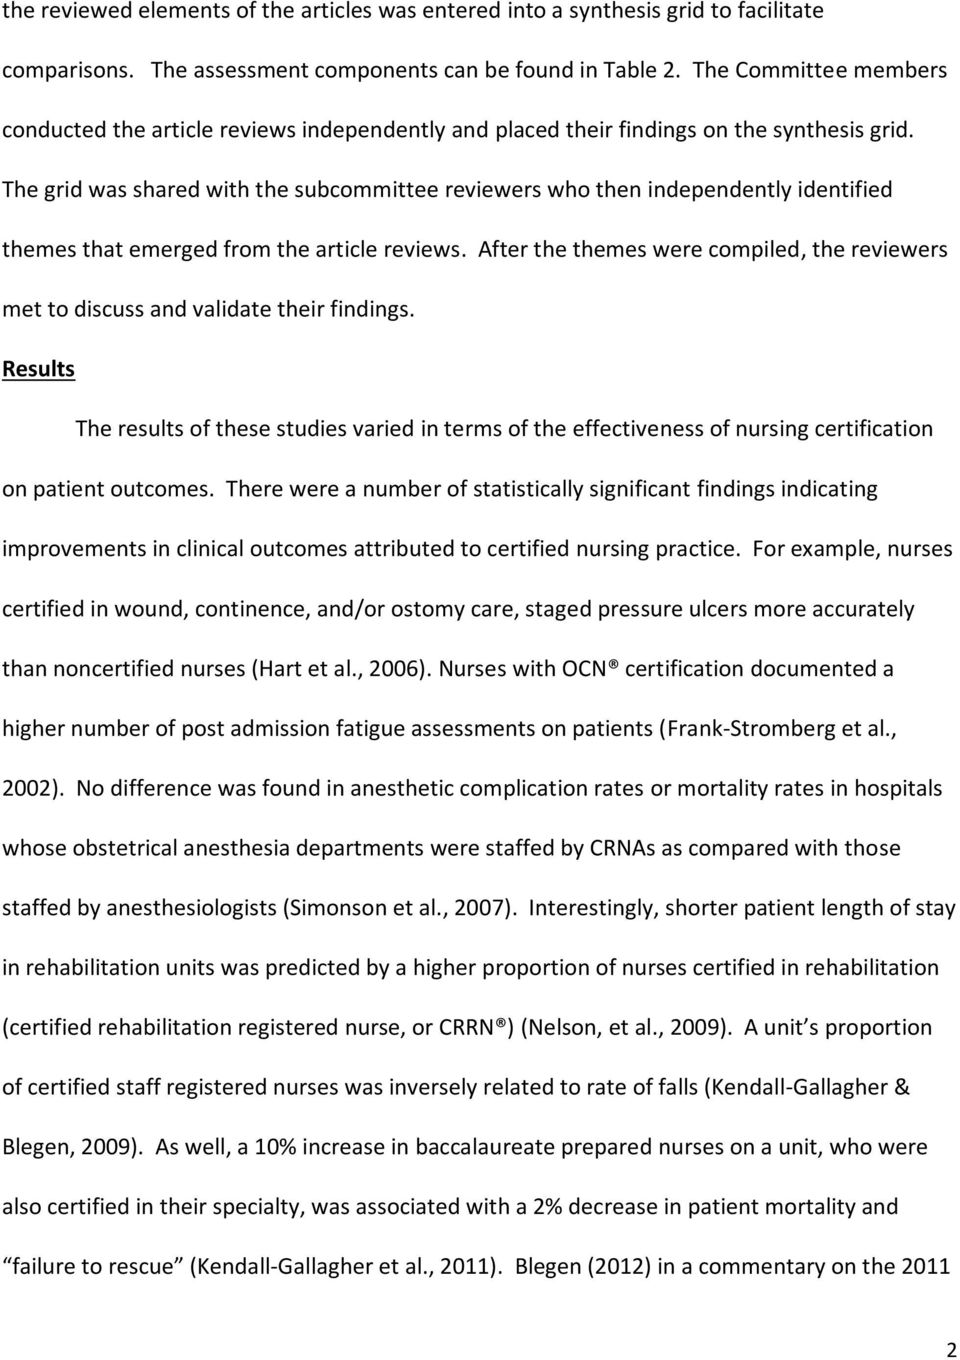 The Relationship Between Nursing Certification And Patient Outcomes